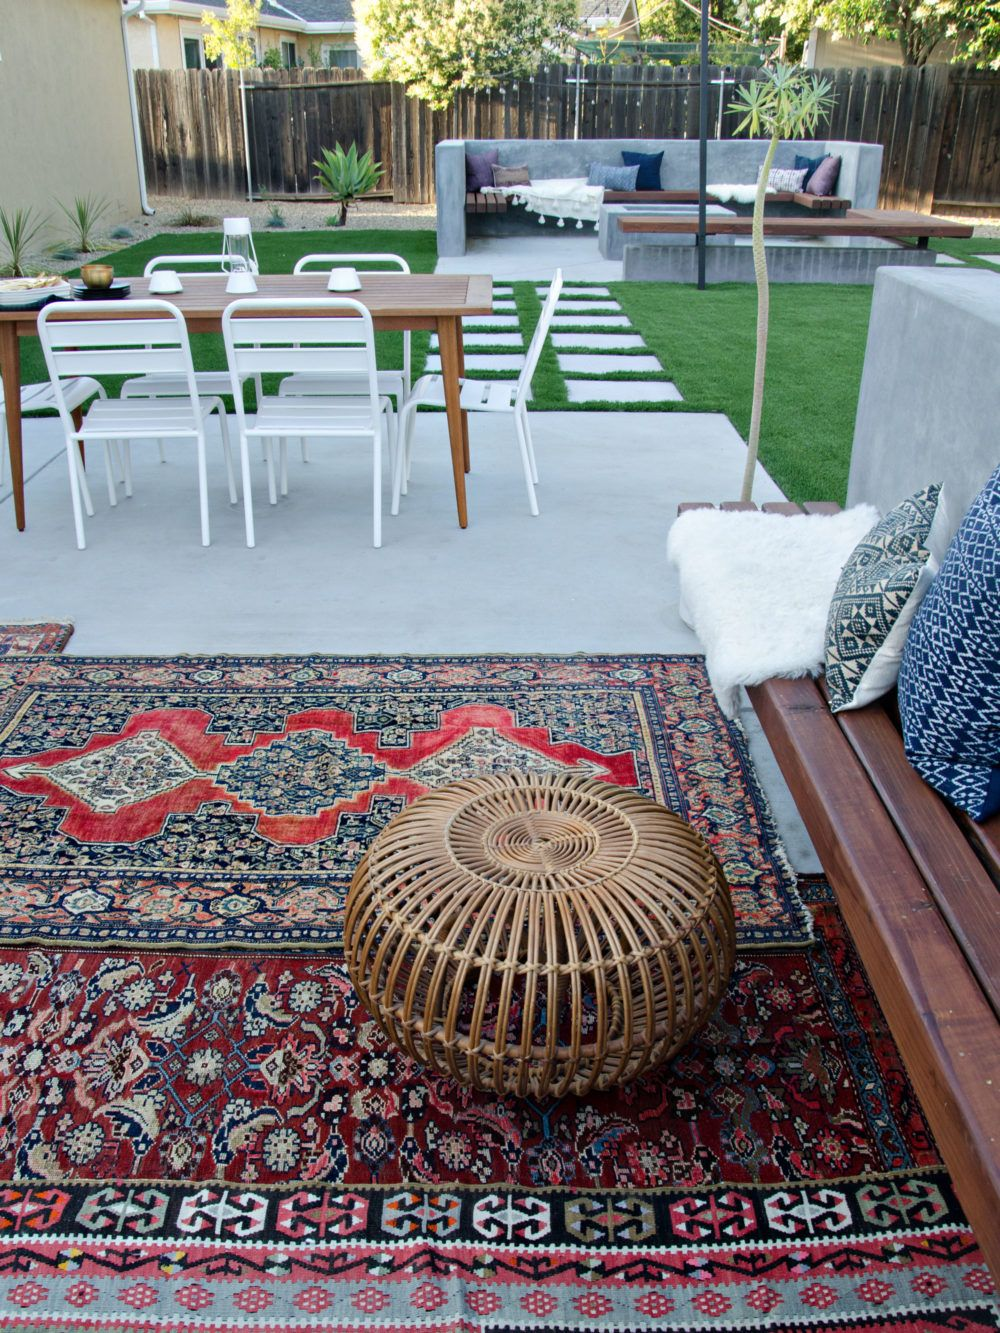 Home Tour | The Vintage Rug Shop